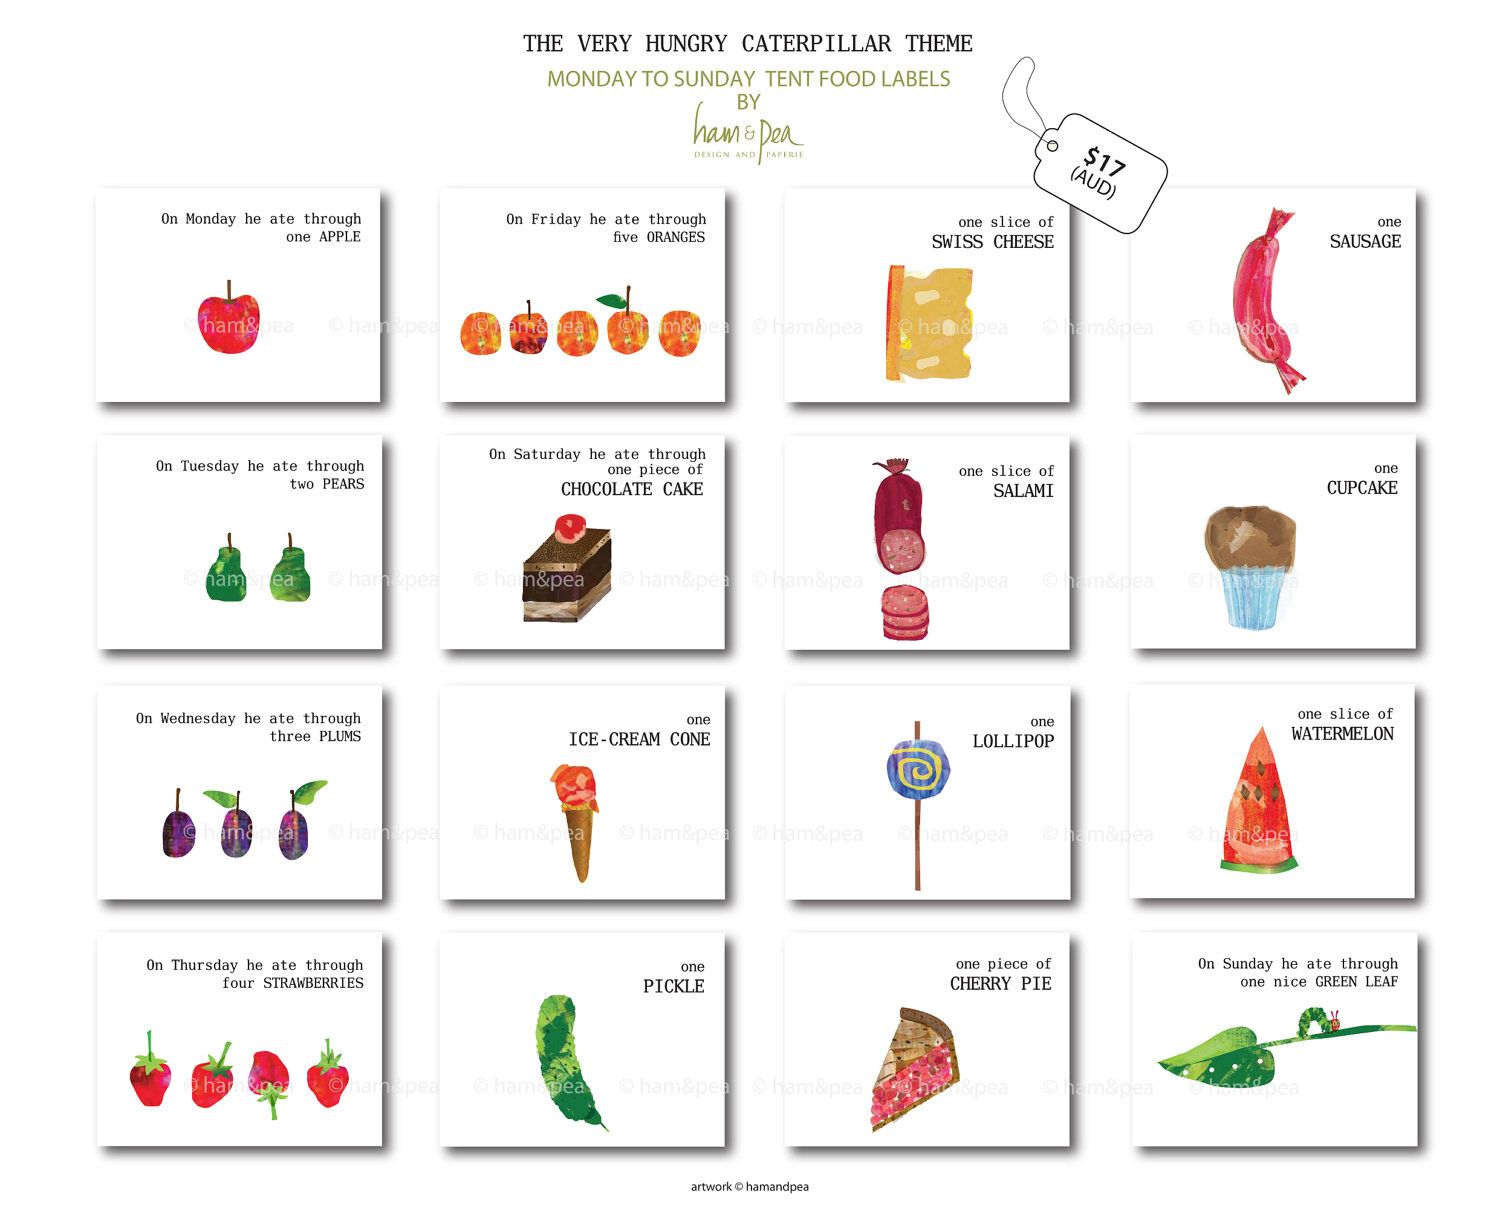 Caterpillar Inspired Tent Food Labels Monday To Sunday Printable File